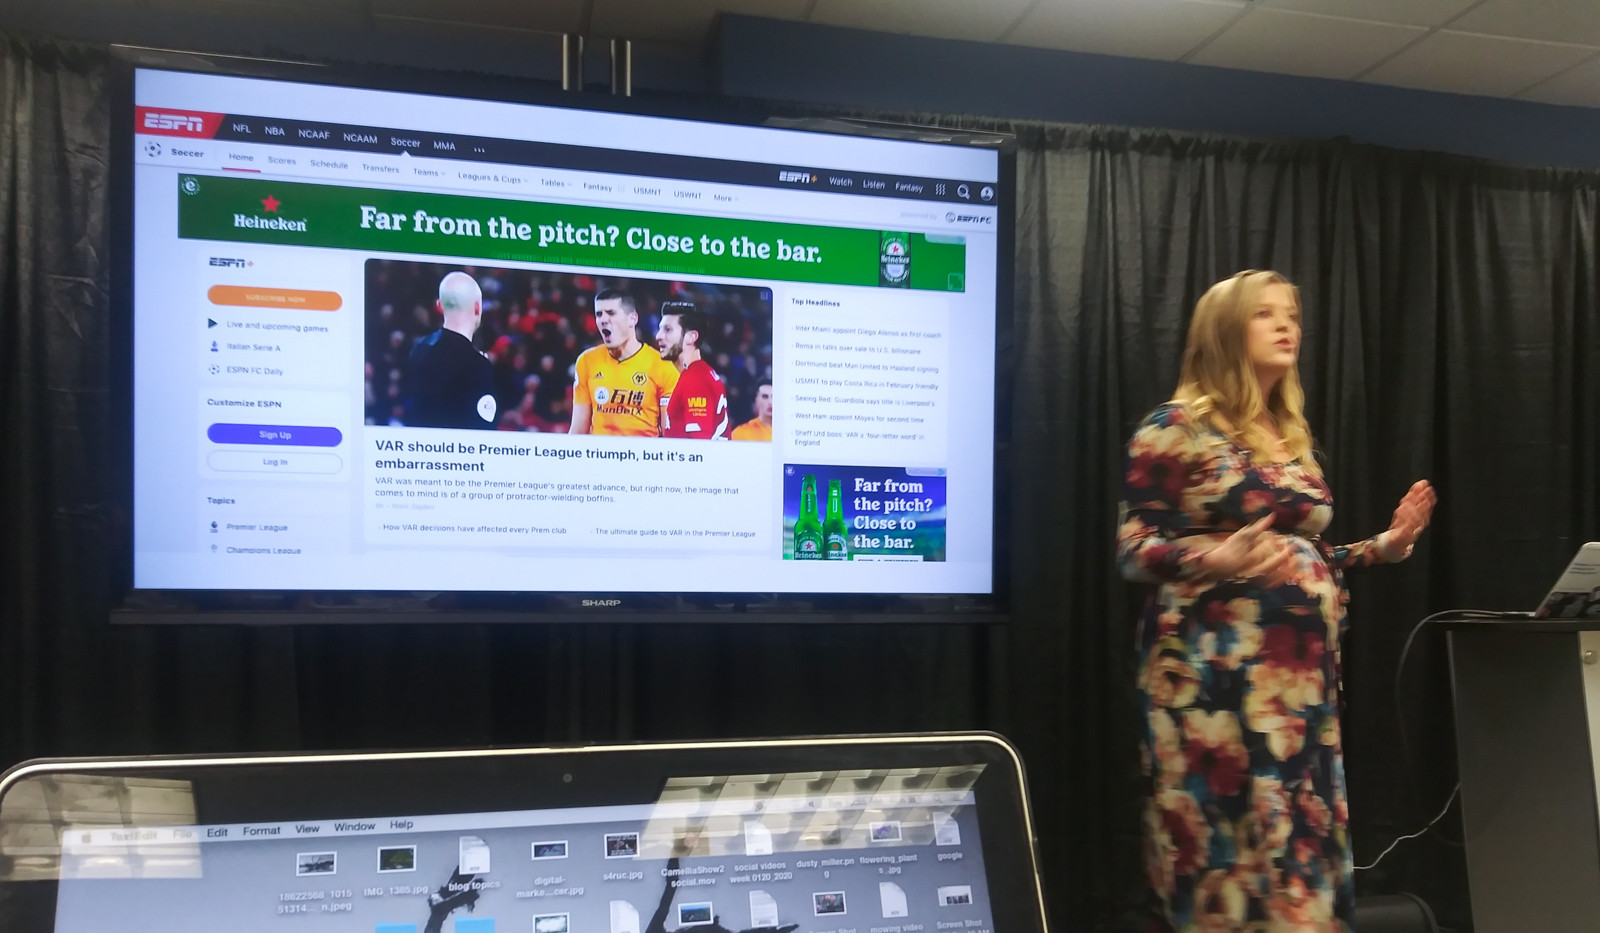 Kenzie 2020 Digital Marketing Summit WJXT in Jacksonville with Google and Adtaxi